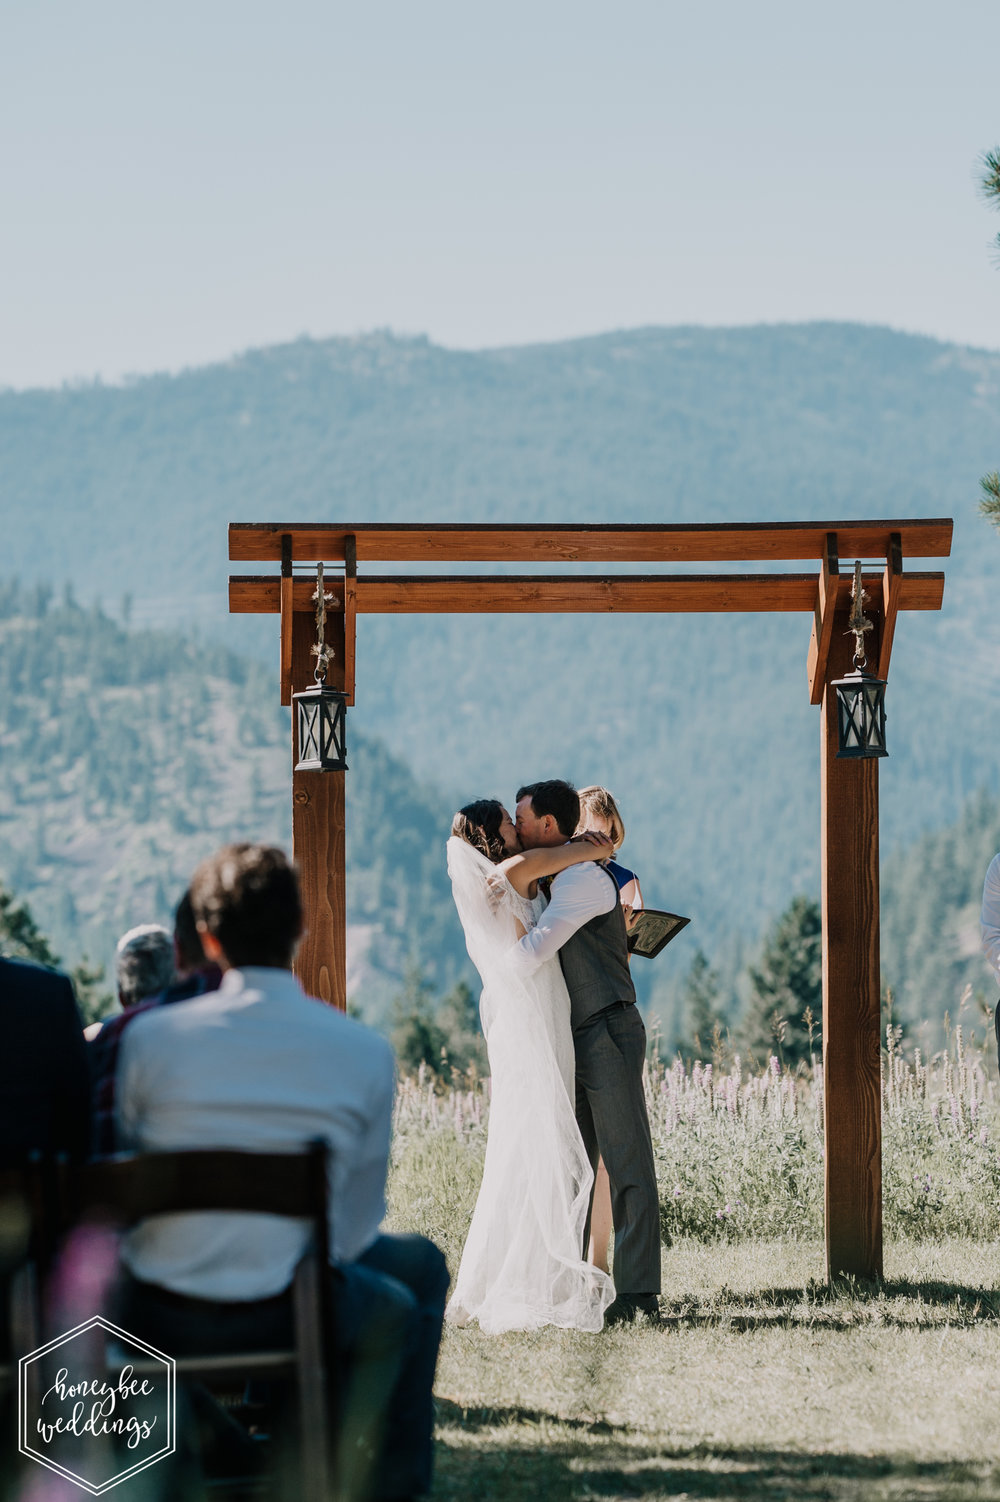 356 White Raven Wedding_Montana Wedding Photographer_Honeybee Weddings_ Meghan Maloney + Arza Hammond 2018-8811.jpg